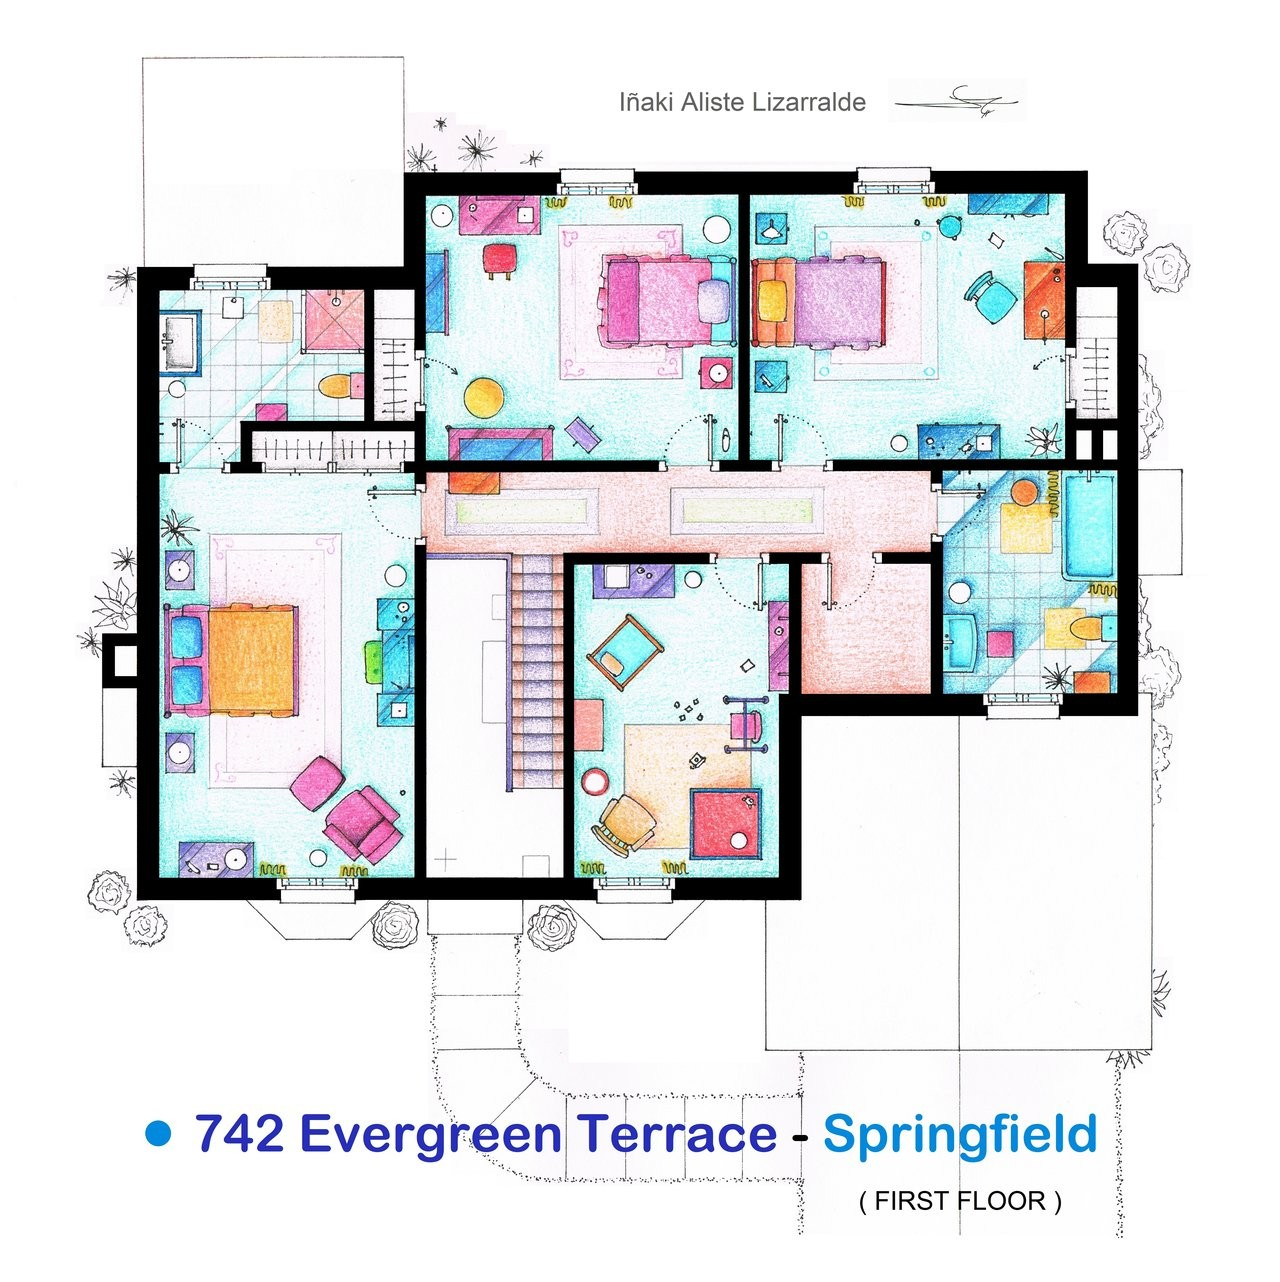 From Friends to Frasier: 13 Famous TV Shows Rendered in Plan | ArchDaily